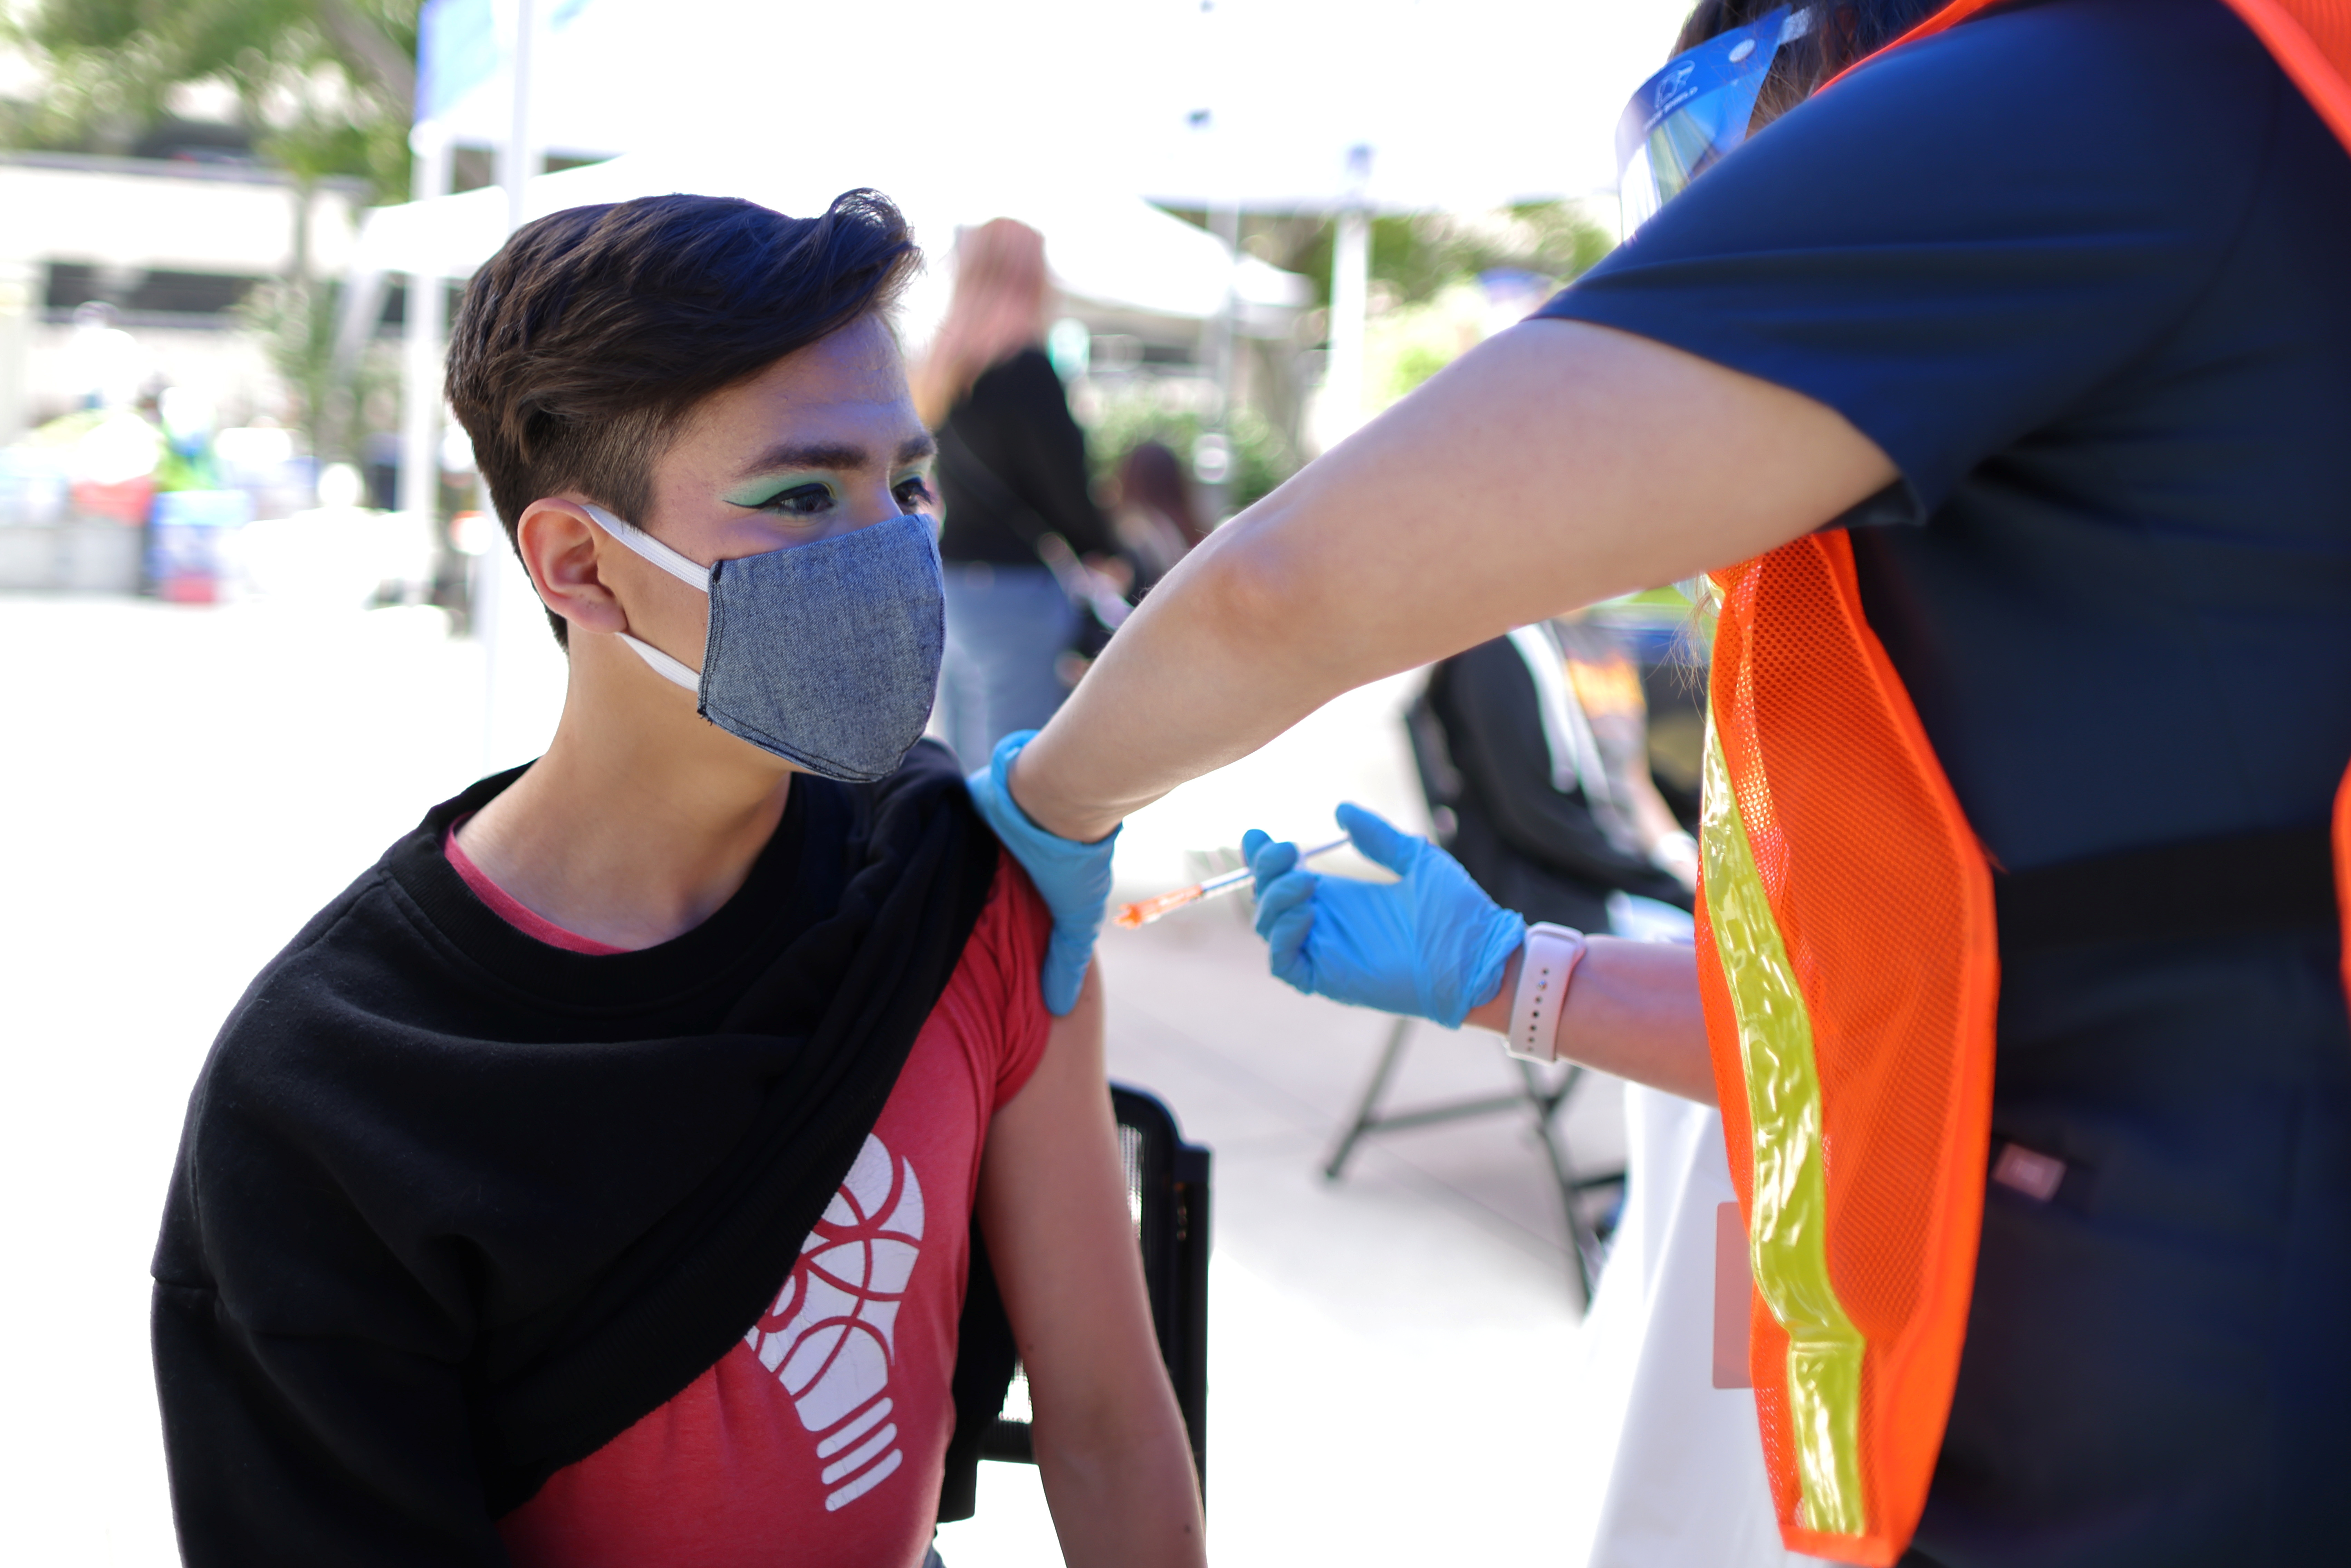 Diego Cervantes, 16, receives a coronavirus disease (COVID-19) vaccination at a vaccine clinic for newly eligible 12 to 15-year-olds in Pasadena, California, U.S., May 14, 2021. REUTERS/Lucy Nicholson